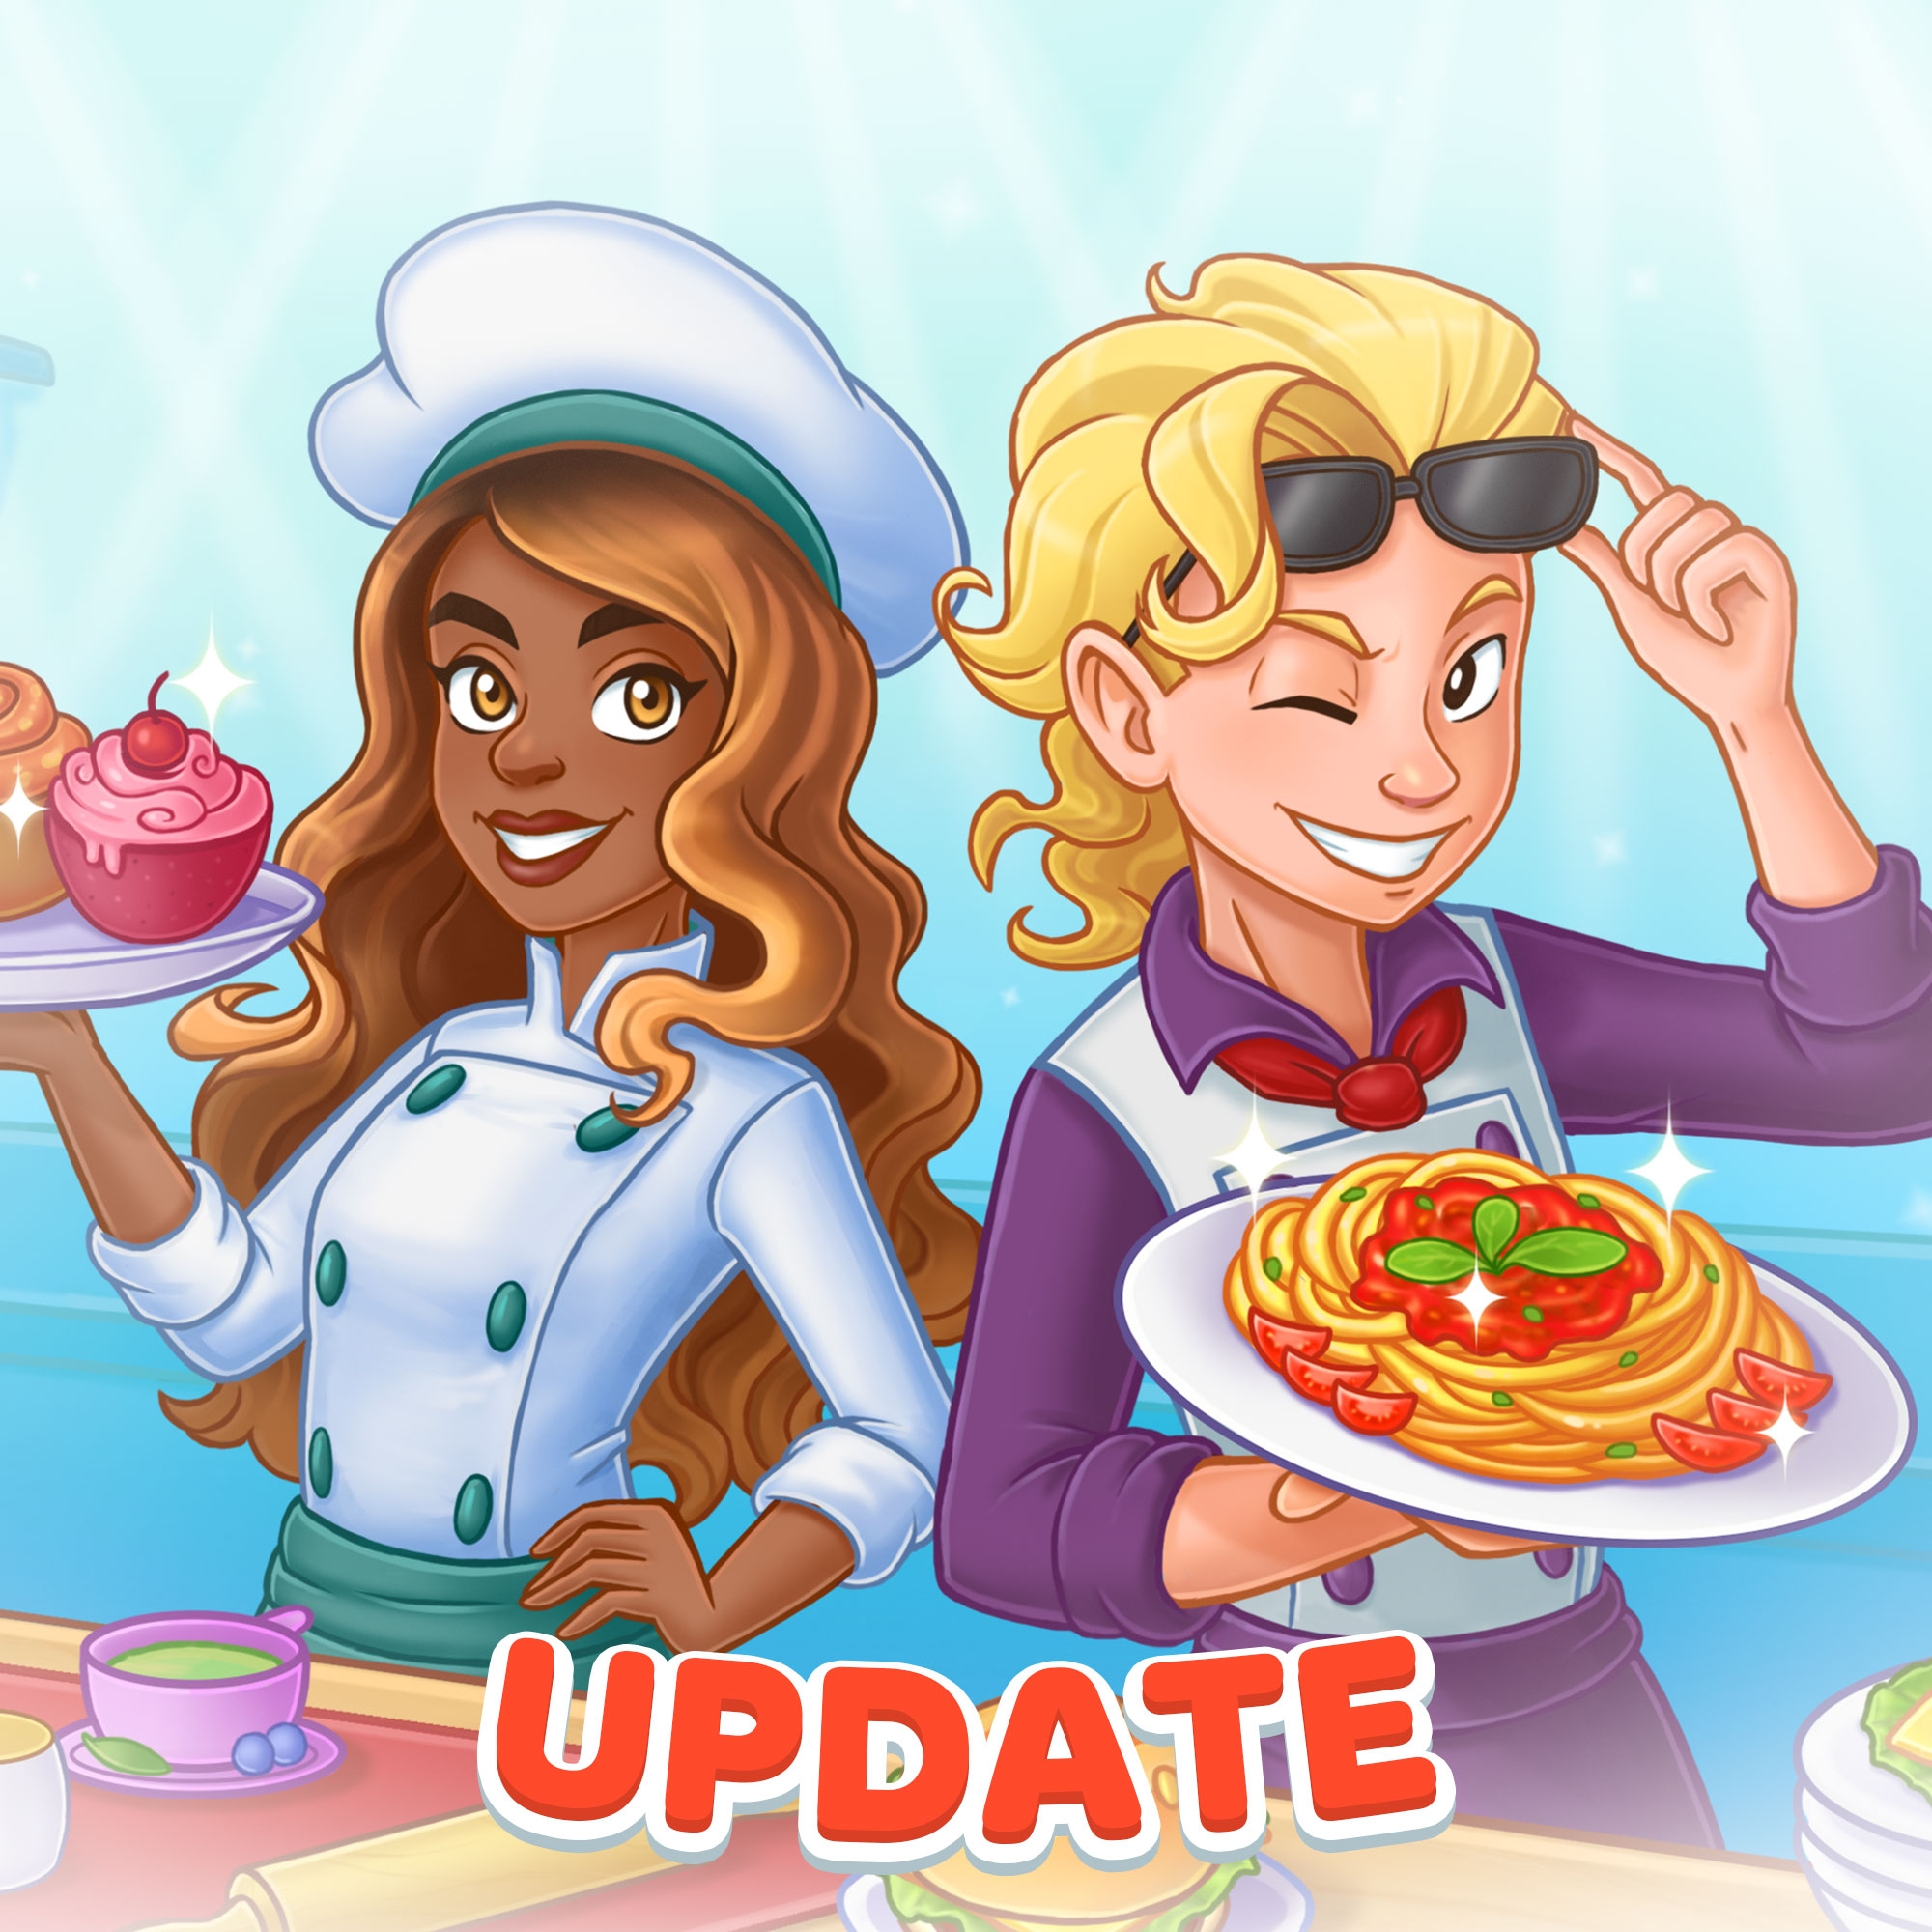 Cooking Diary. Update is now out!